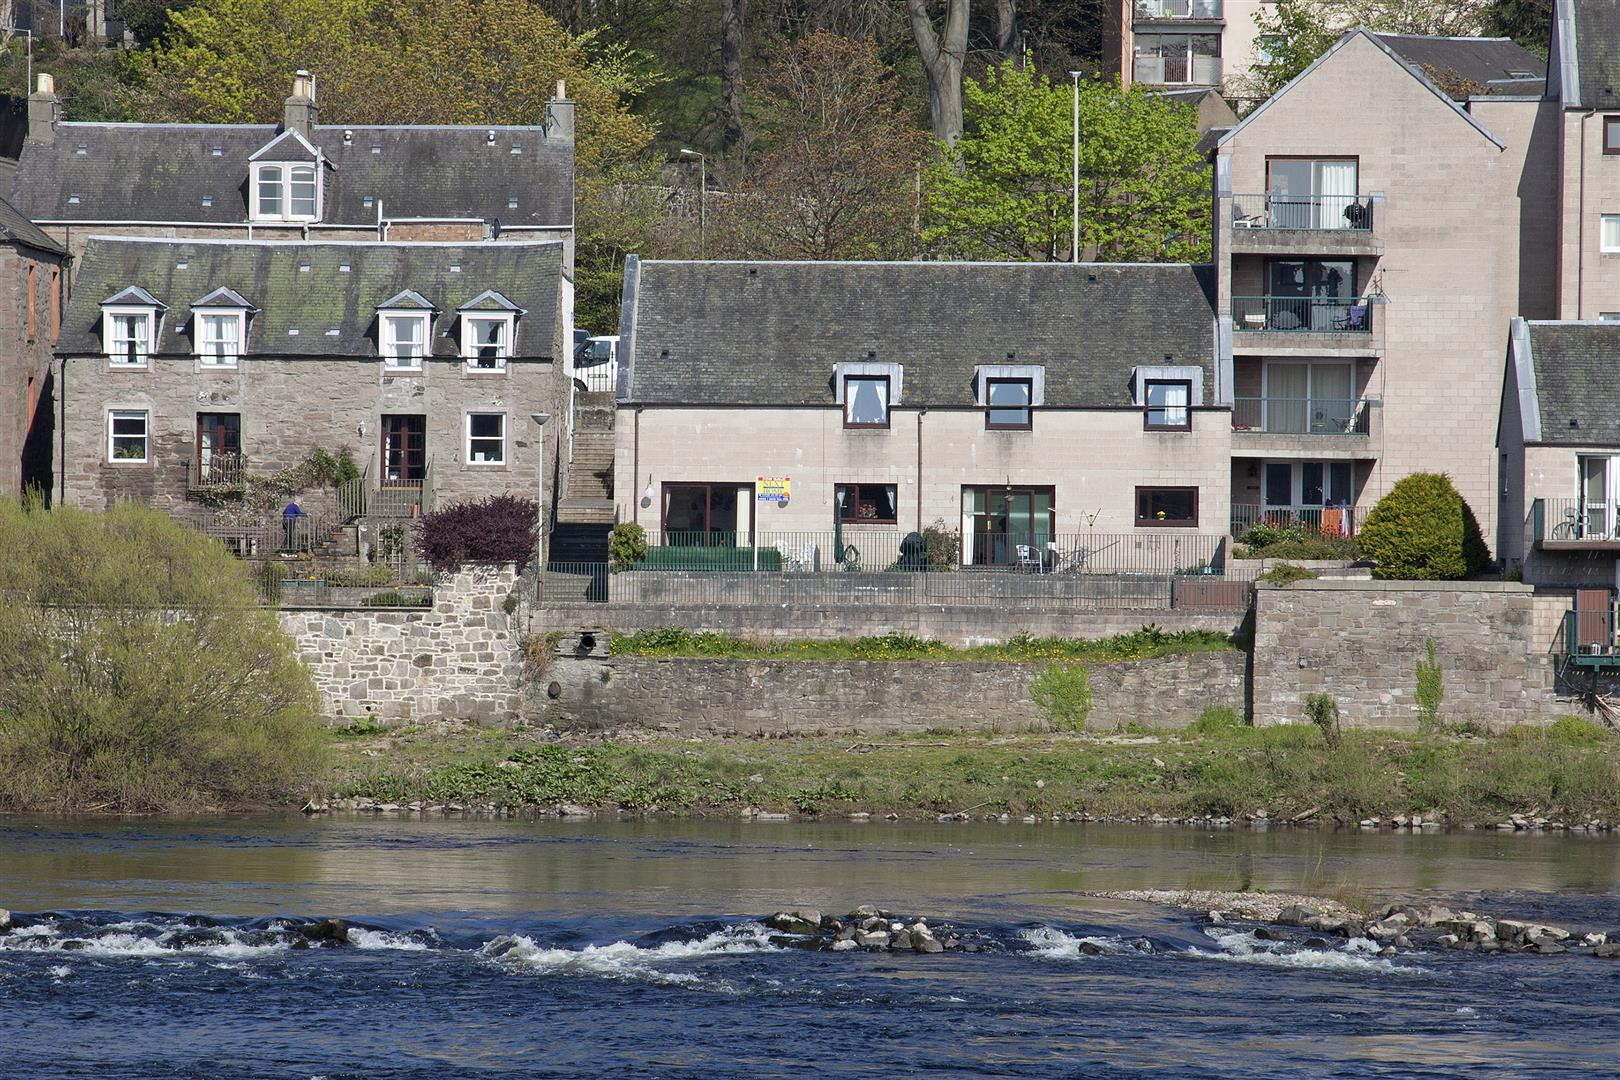 40, Commercial Street, Perth, Perthshire, PH2 7DT, UK